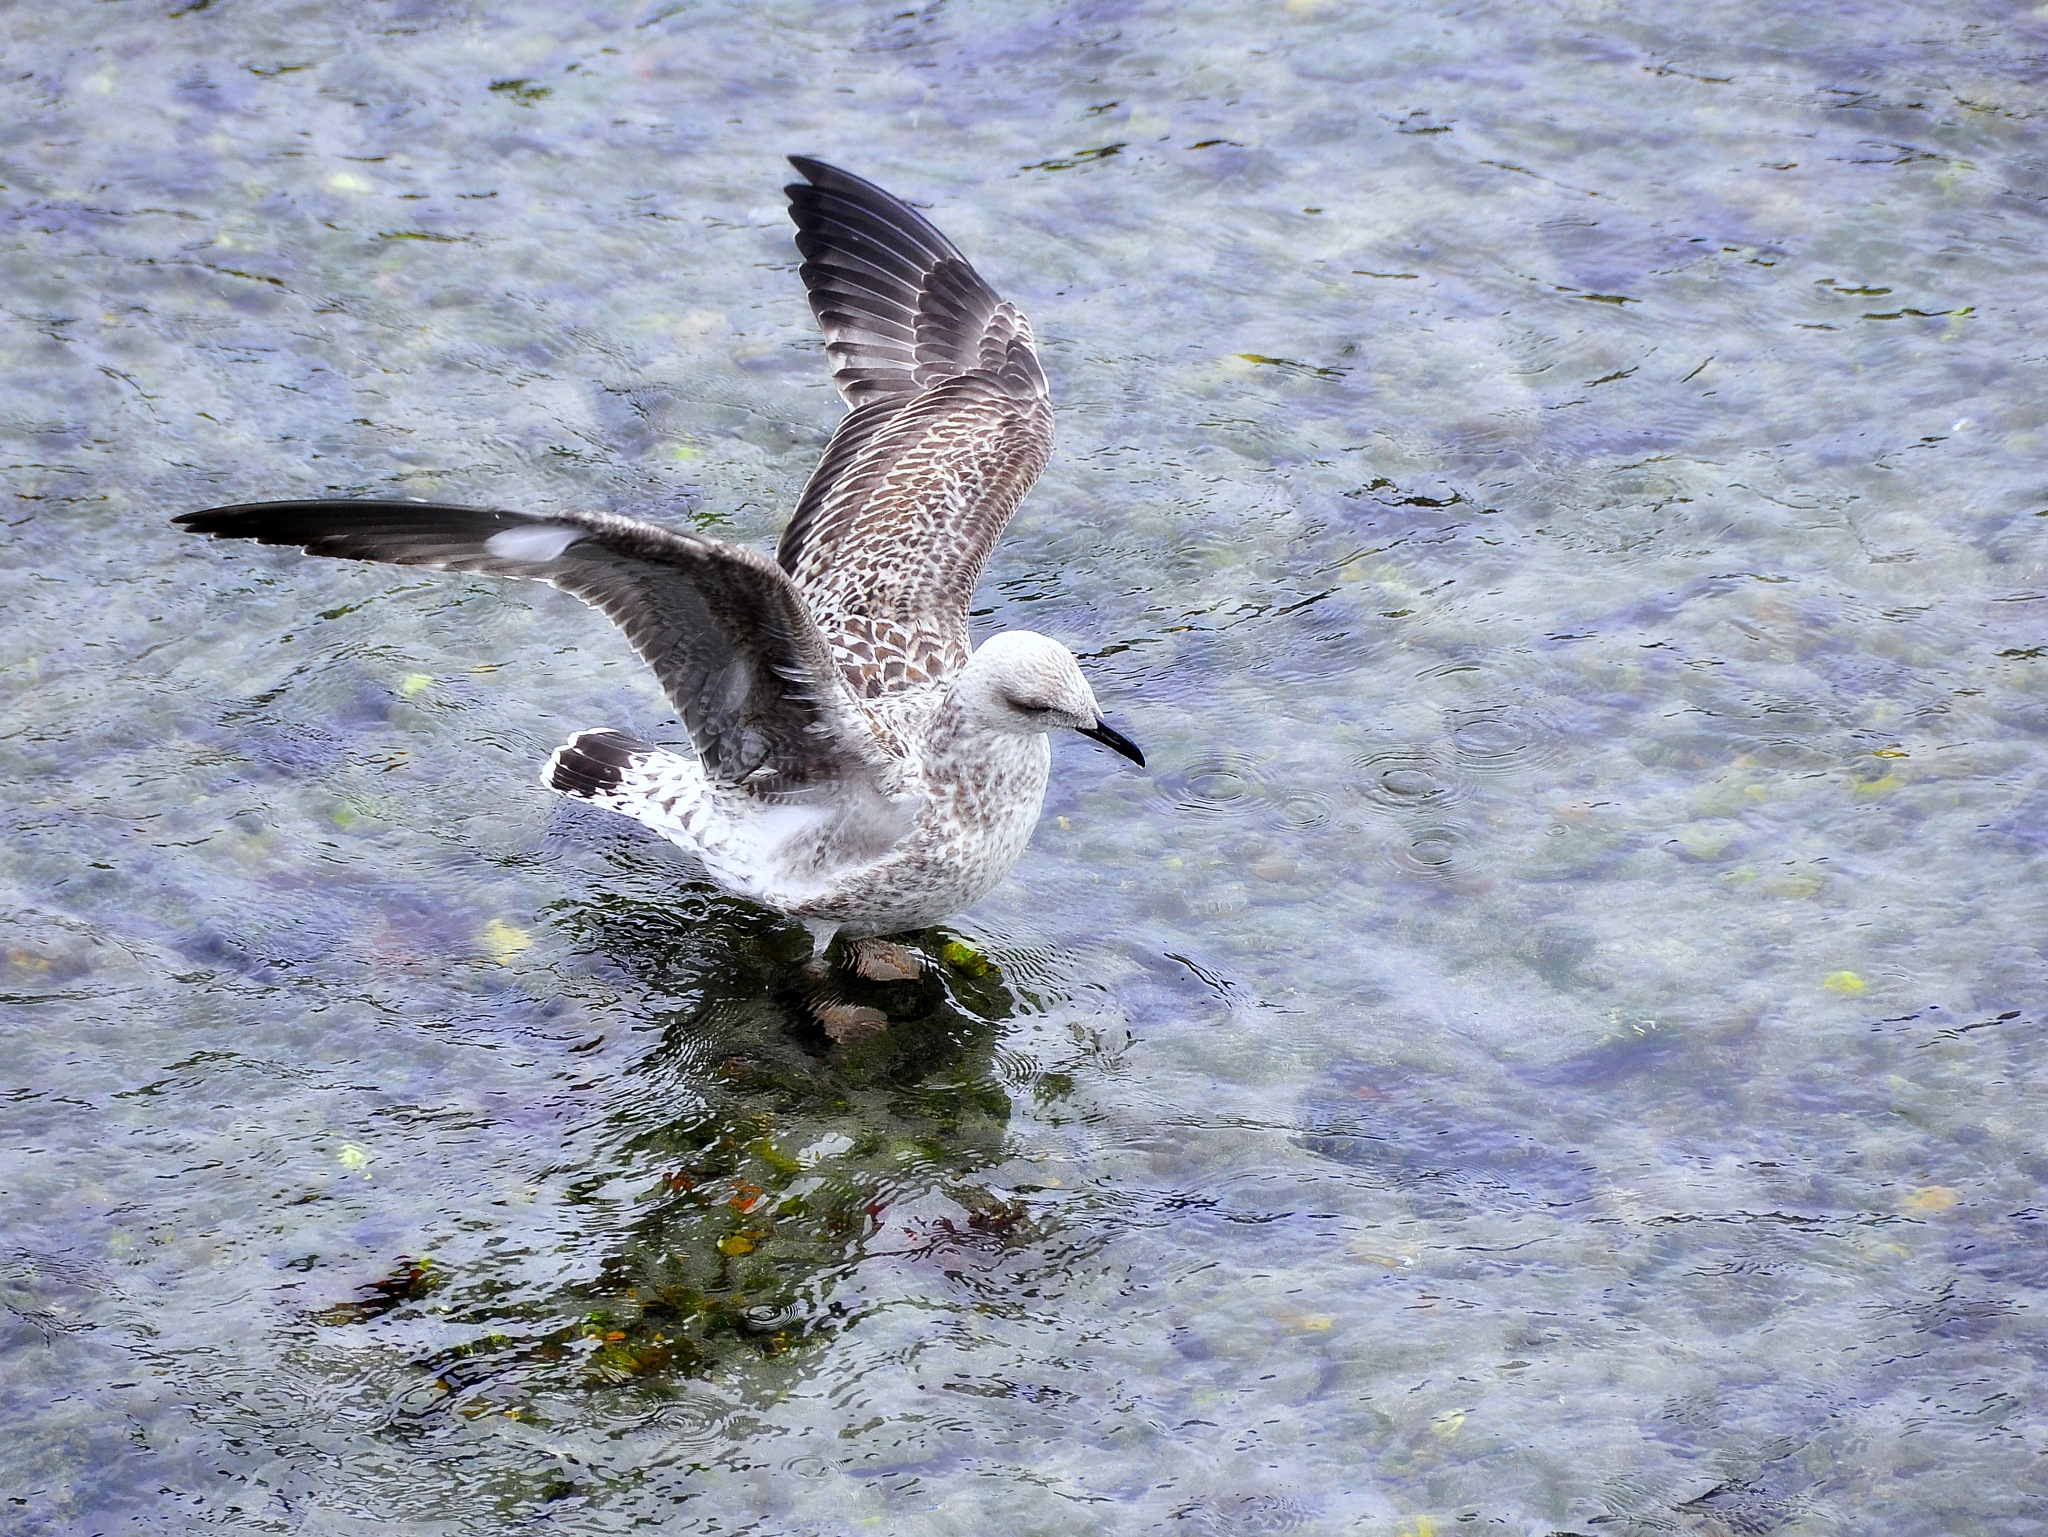 vuelo by angelgarcia